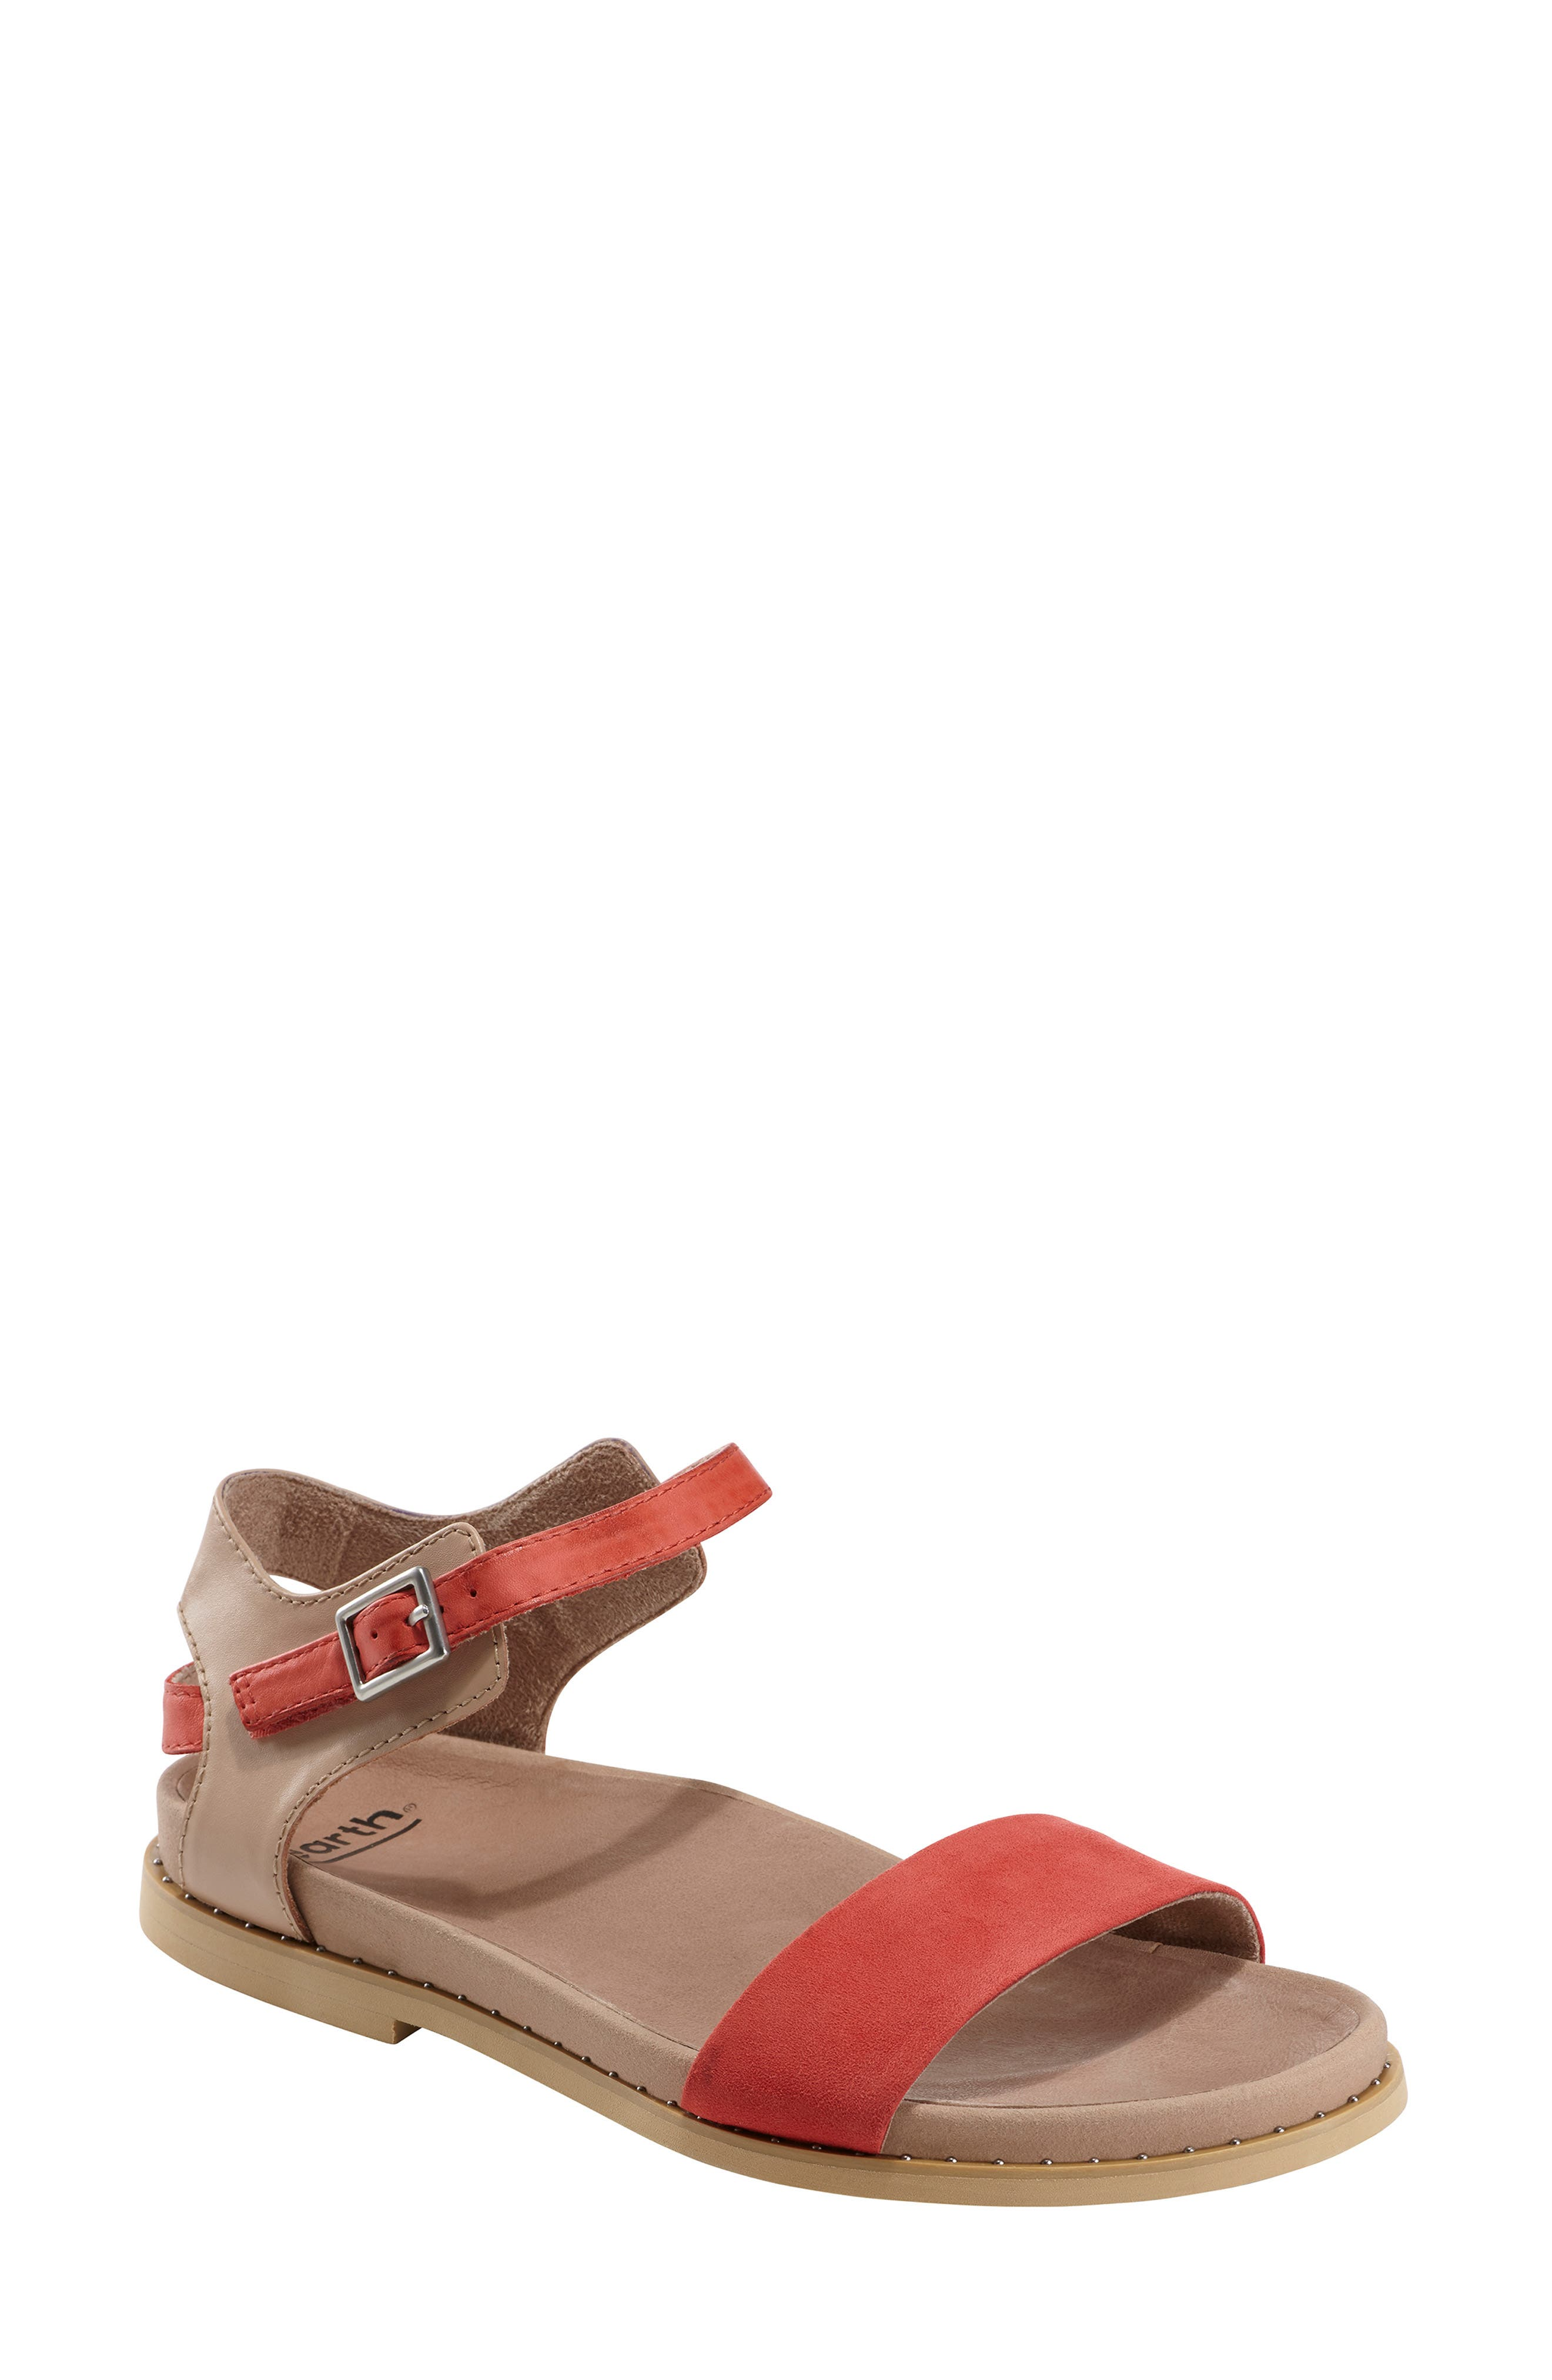 EARTH<SUP>®</SUP>, Cameo Sandal, Main thumbnail 1, color, BRIGHT CORAL SUEDE